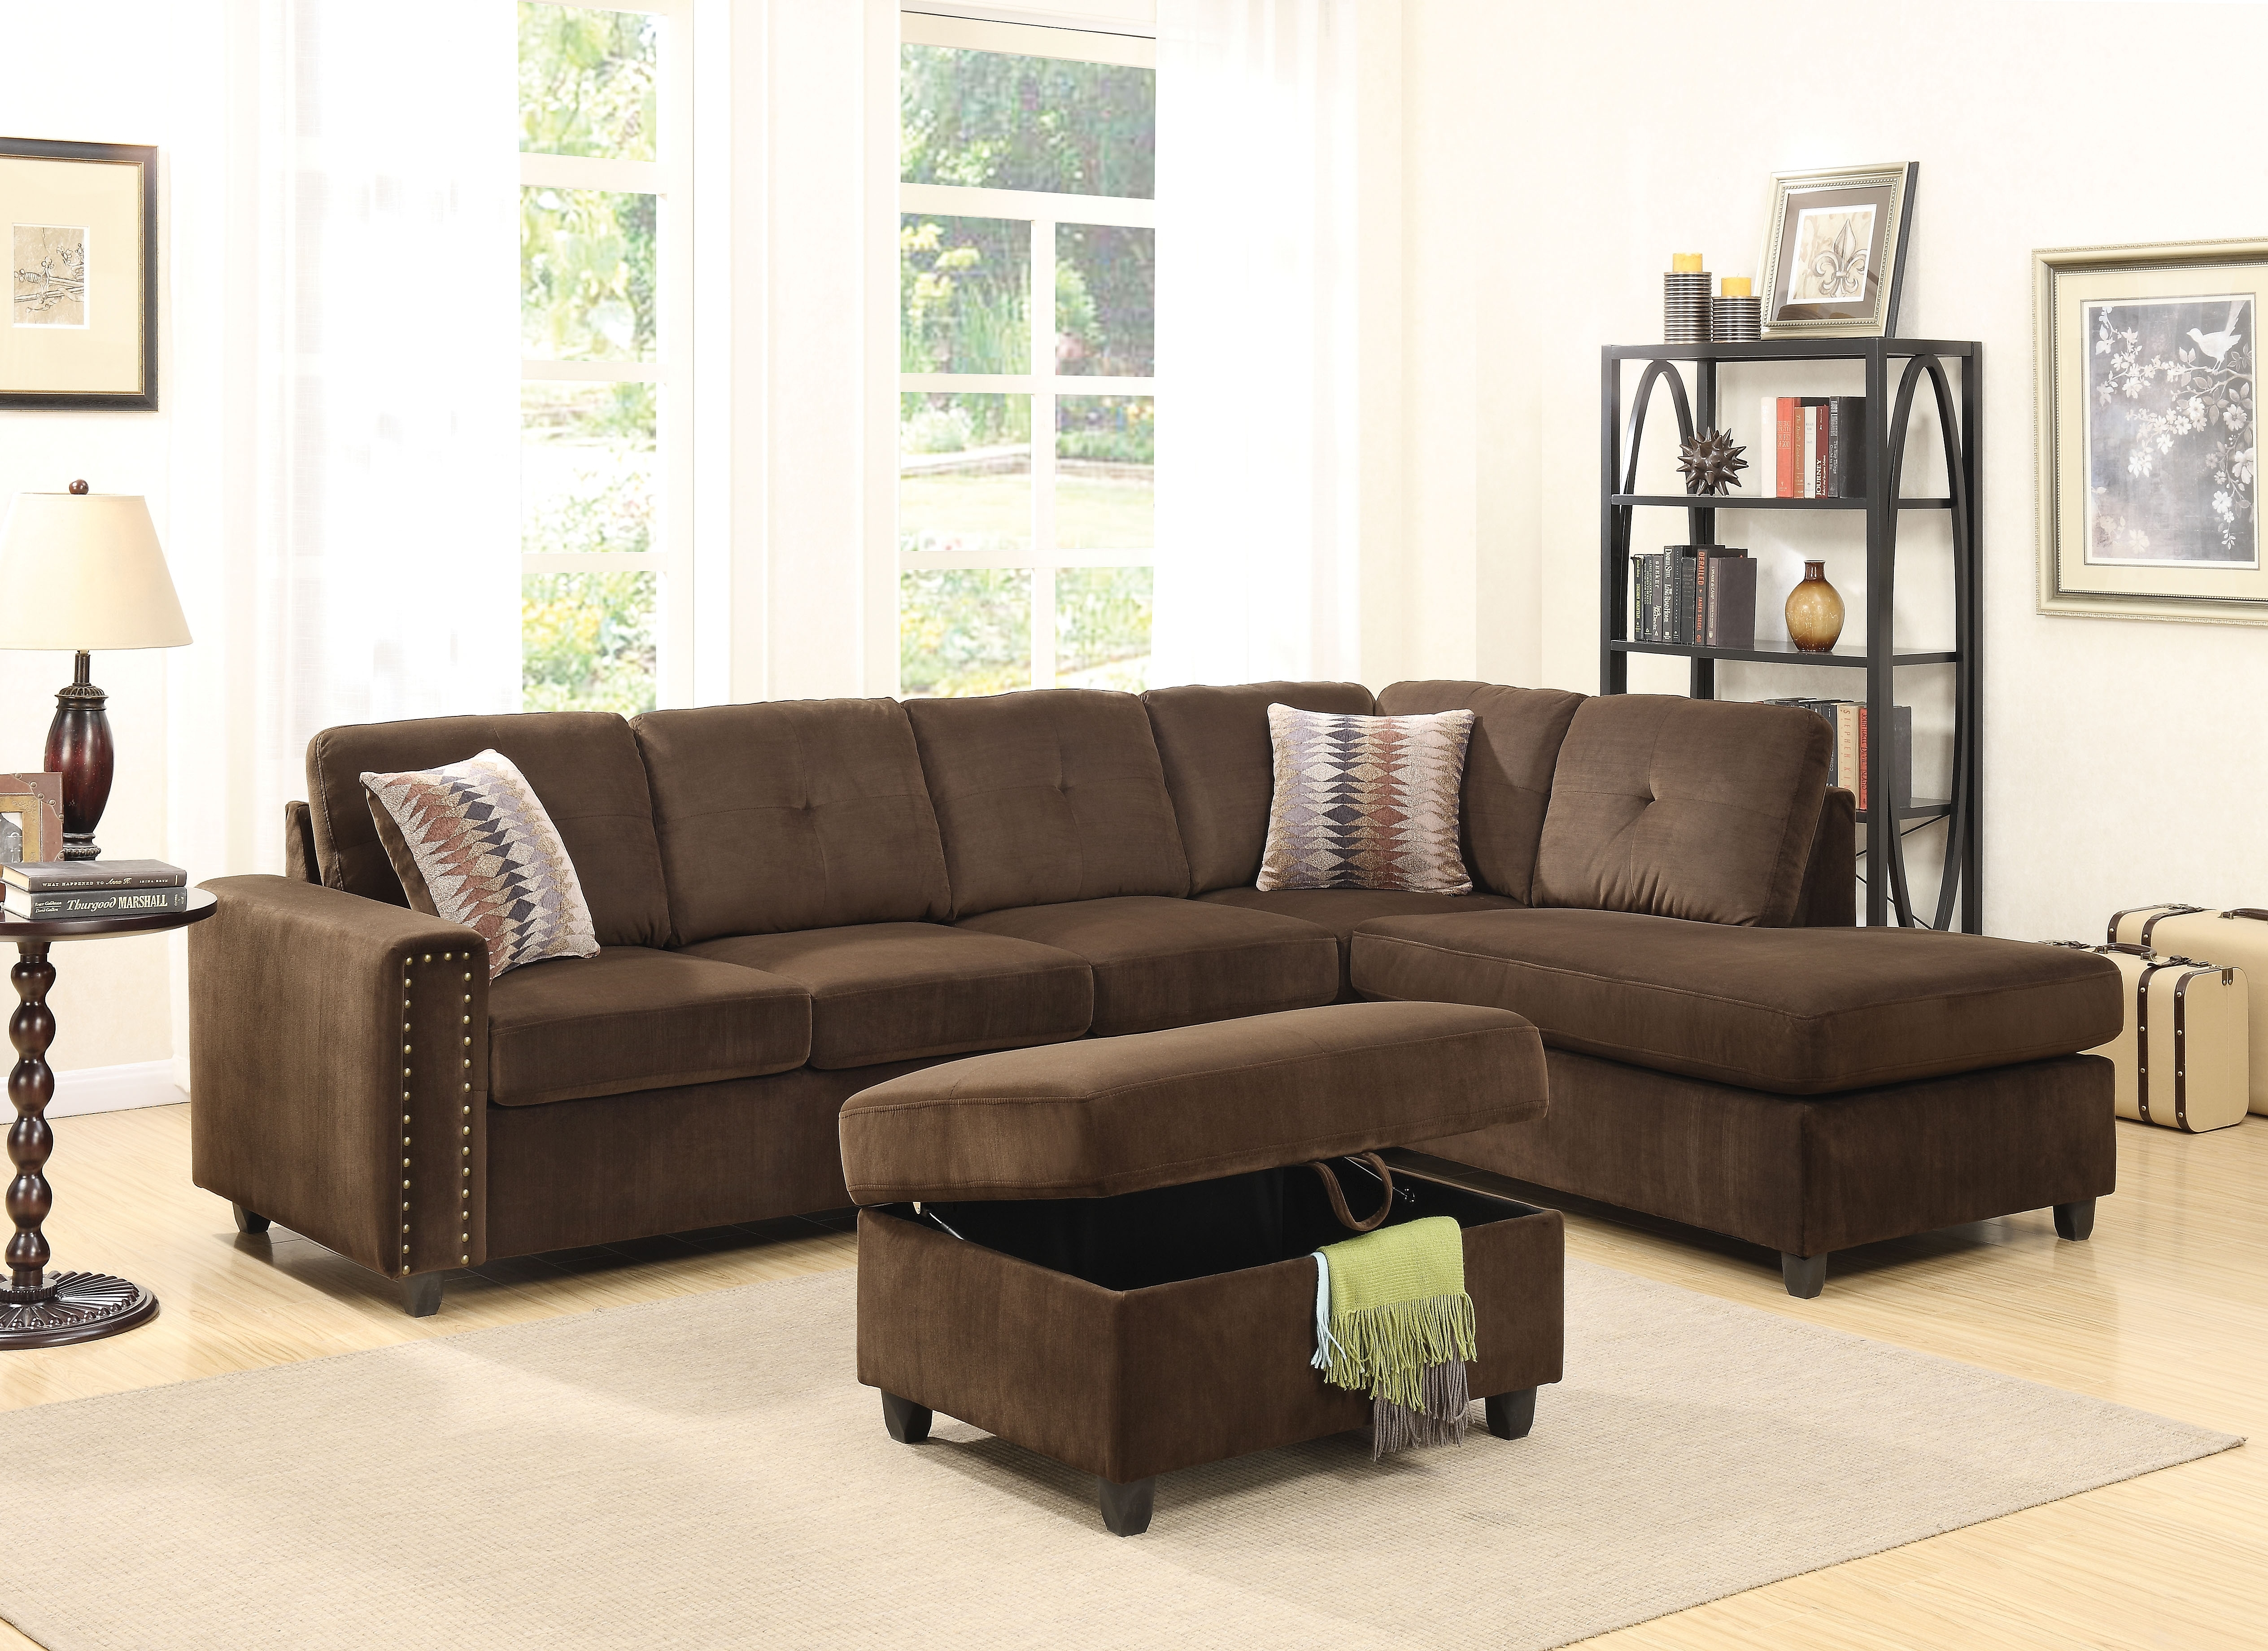 Acme Belville Reversible Sectional Sofa With 2 Pillows, Chocolate With Chocolate Sectional Sofas (View 8 of 10)